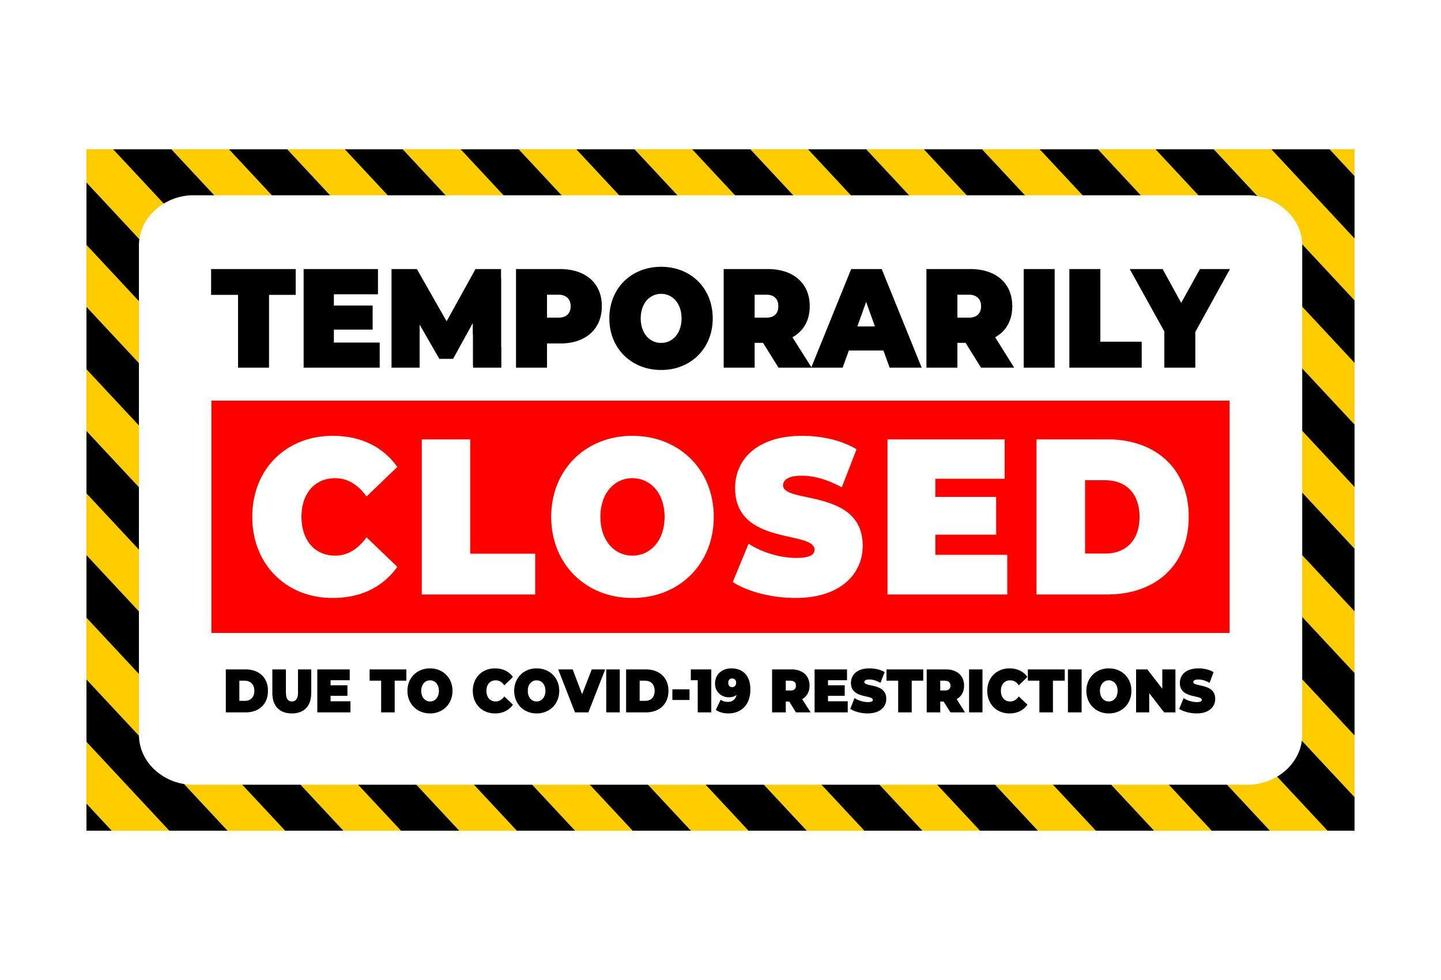 temporarily closed due to covid restriction vector